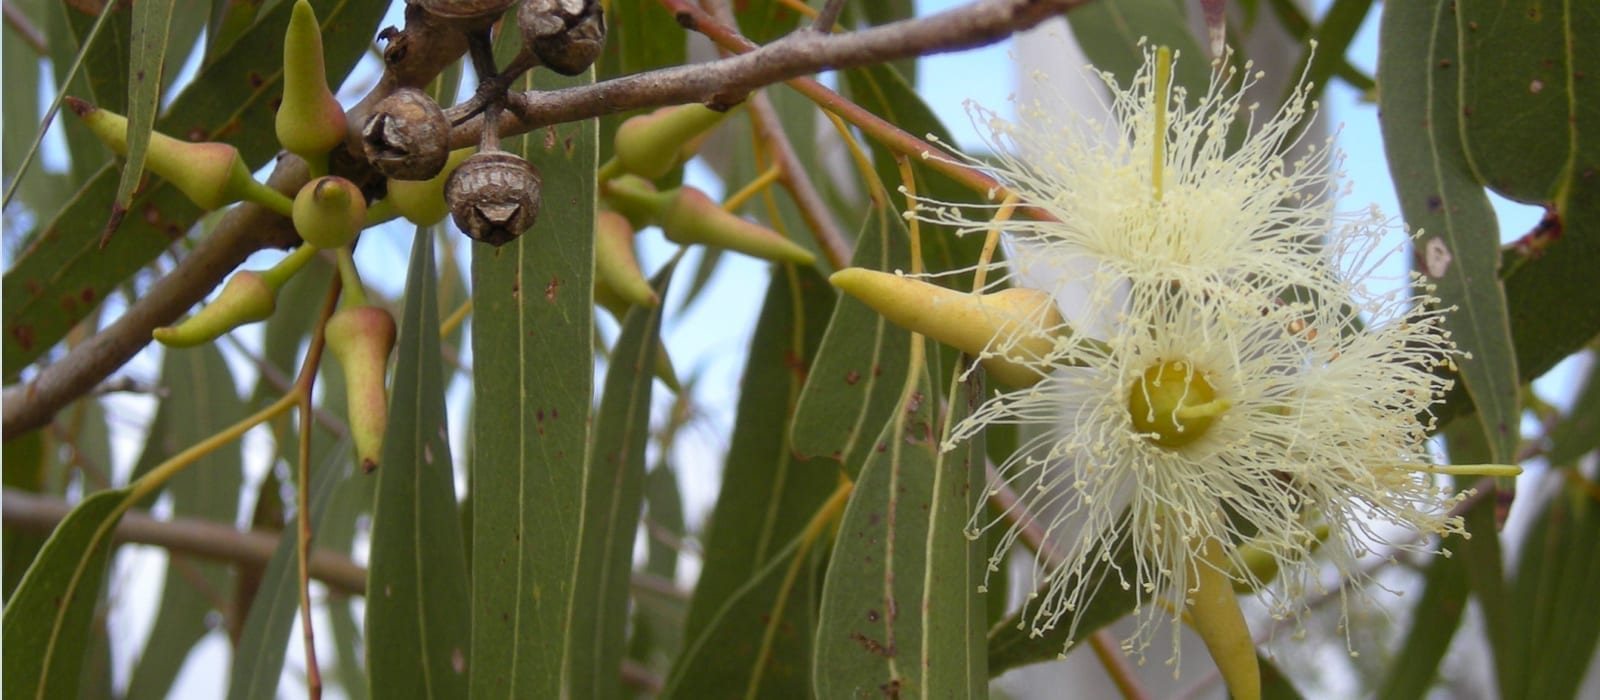 Eucalyptus Essential Oils for Headaches